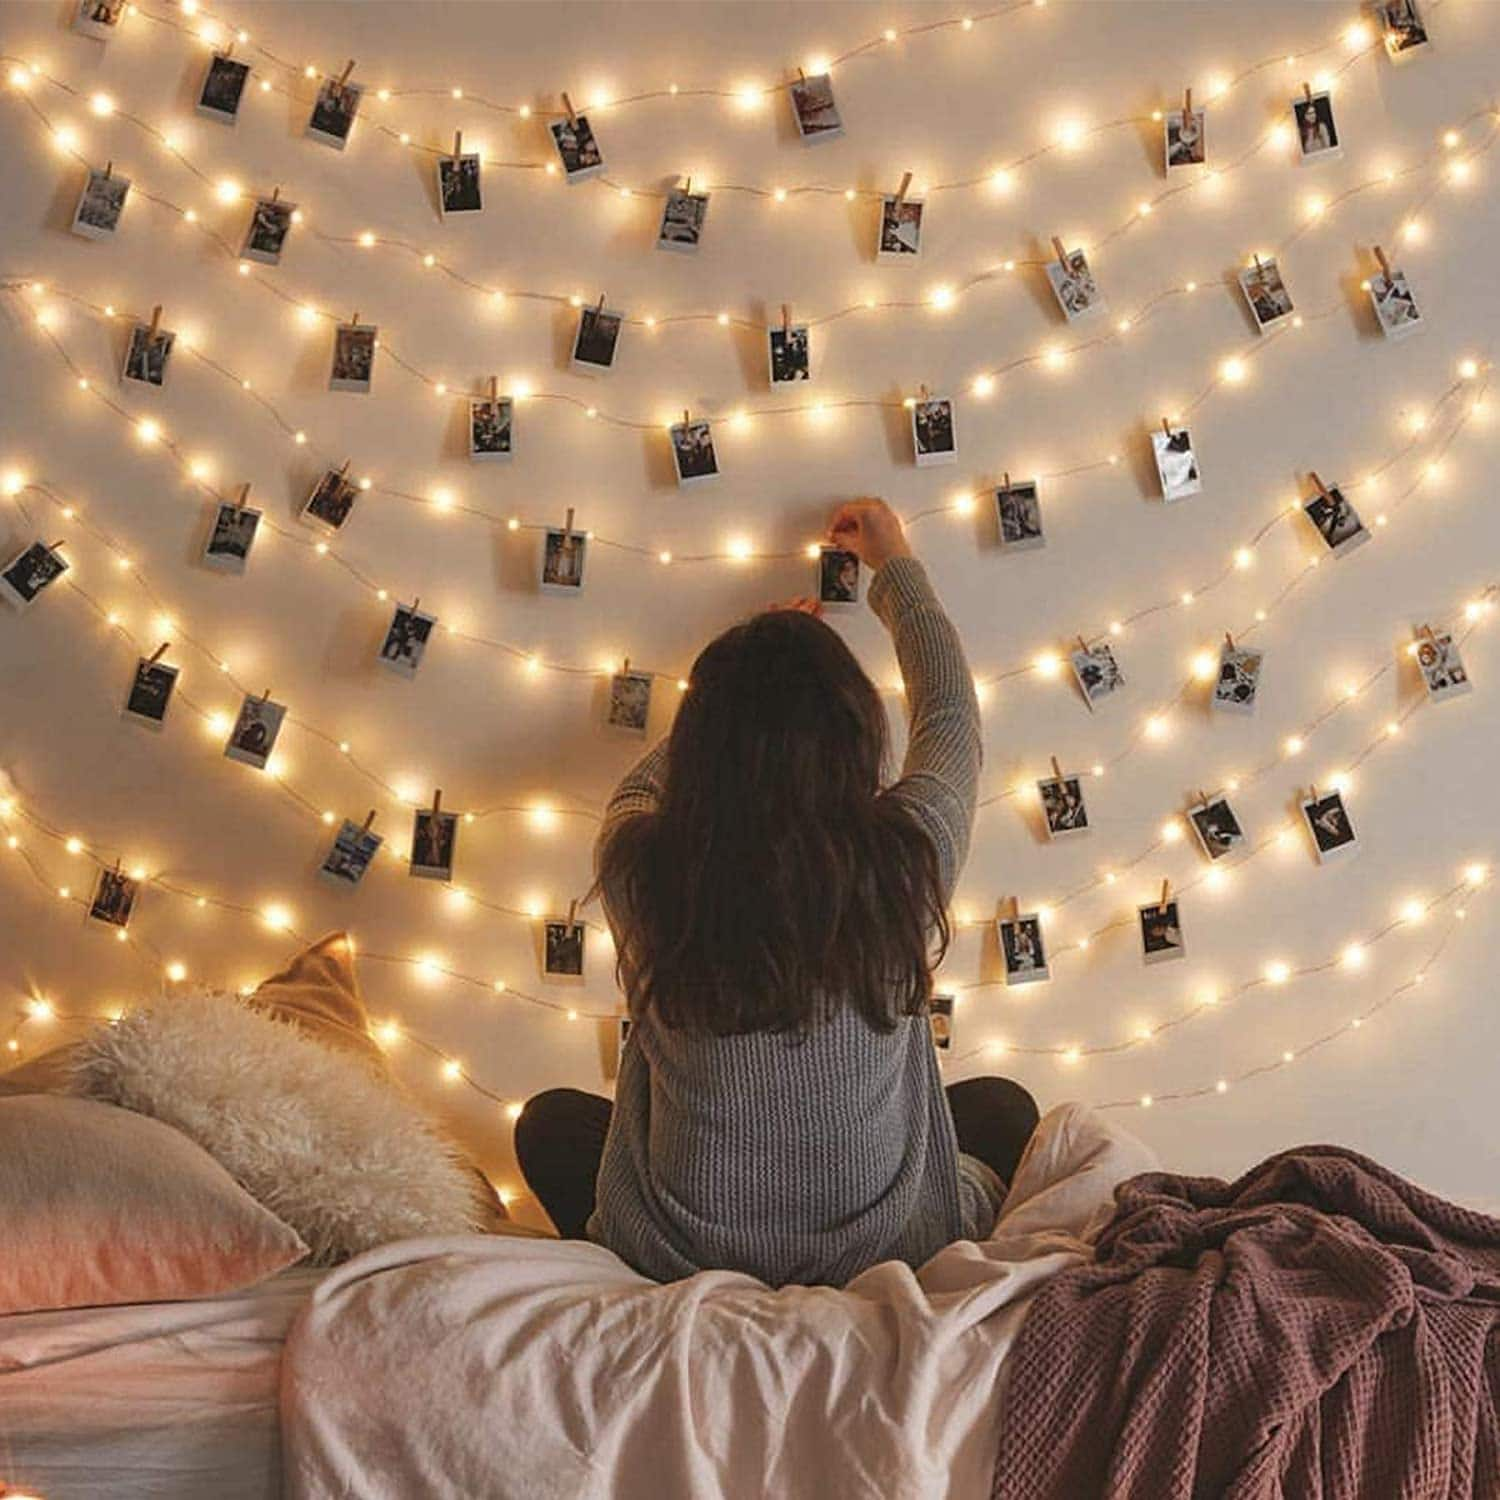 Vont LED Starry Fairy Lights $7.99 or less @ Amazon ymmv